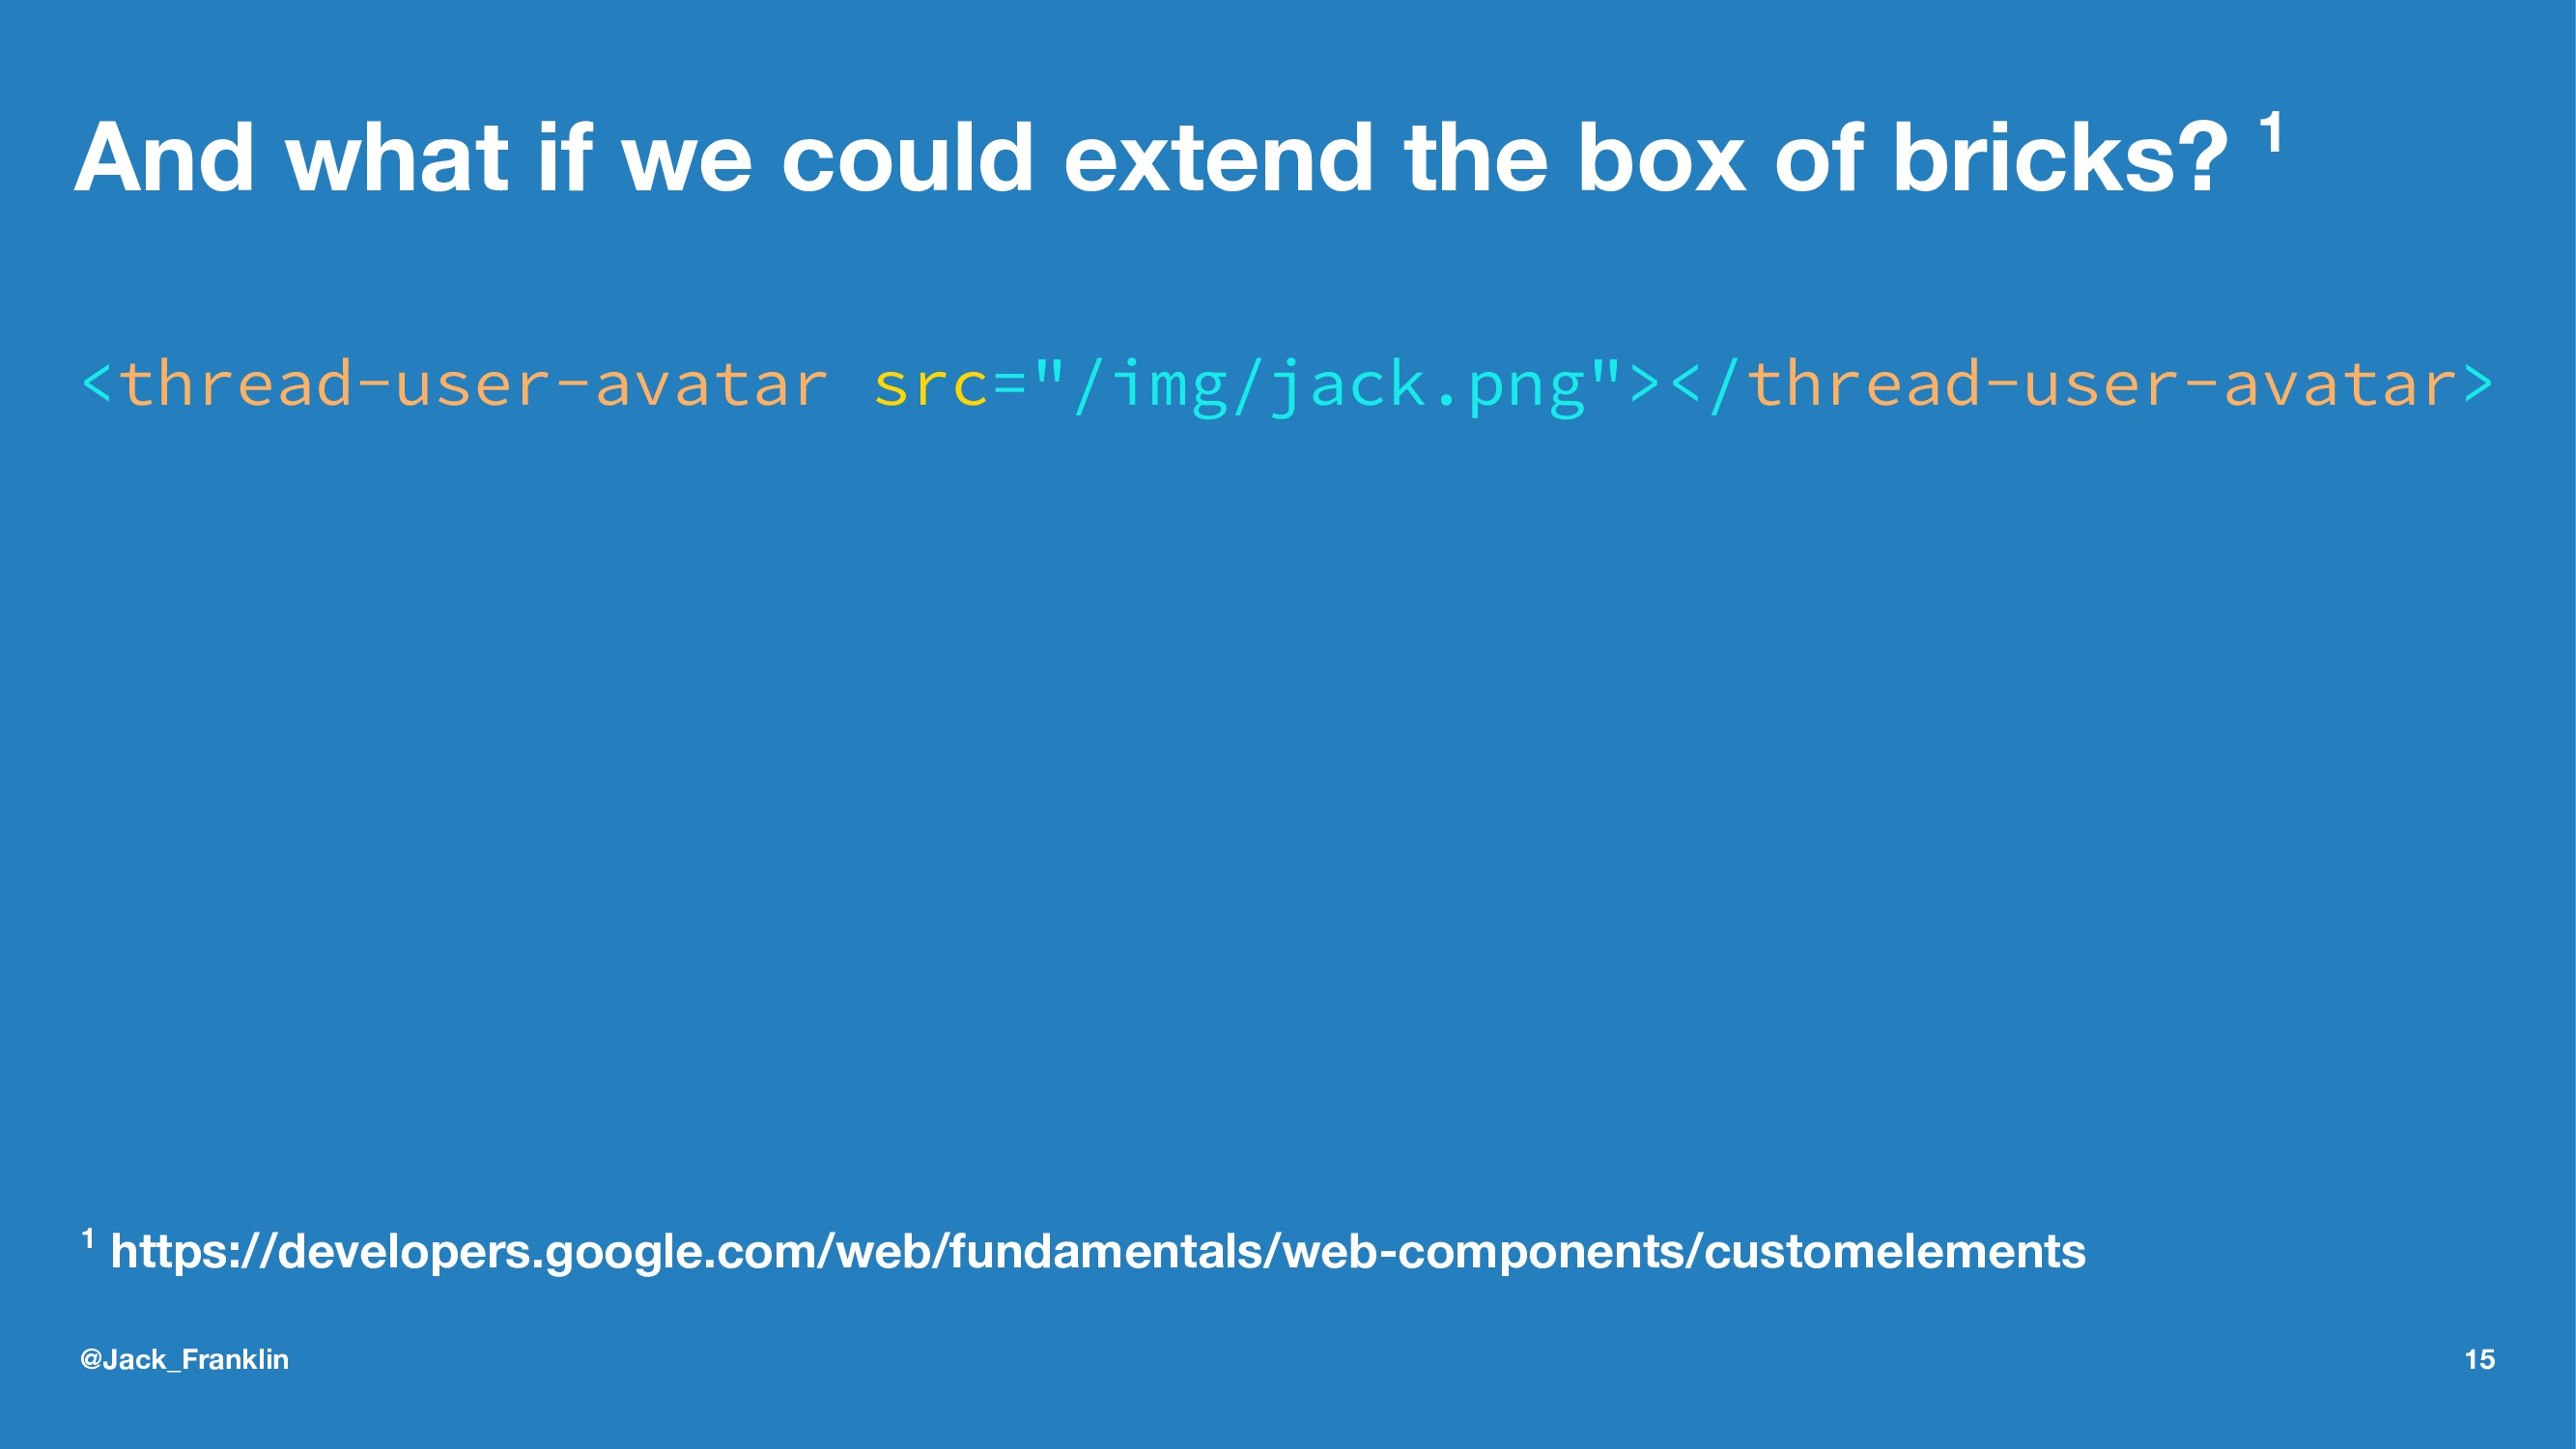 And what if we could extend the box of bricks? ...